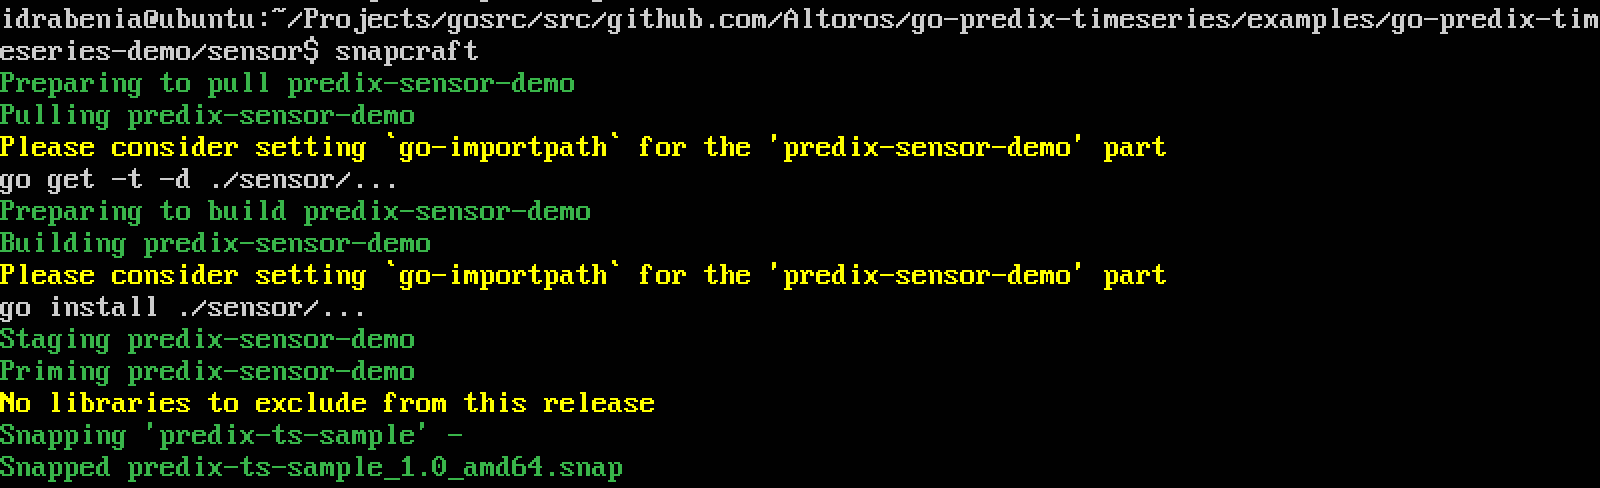 canonical-snaps-ge-predix-time-series-demo